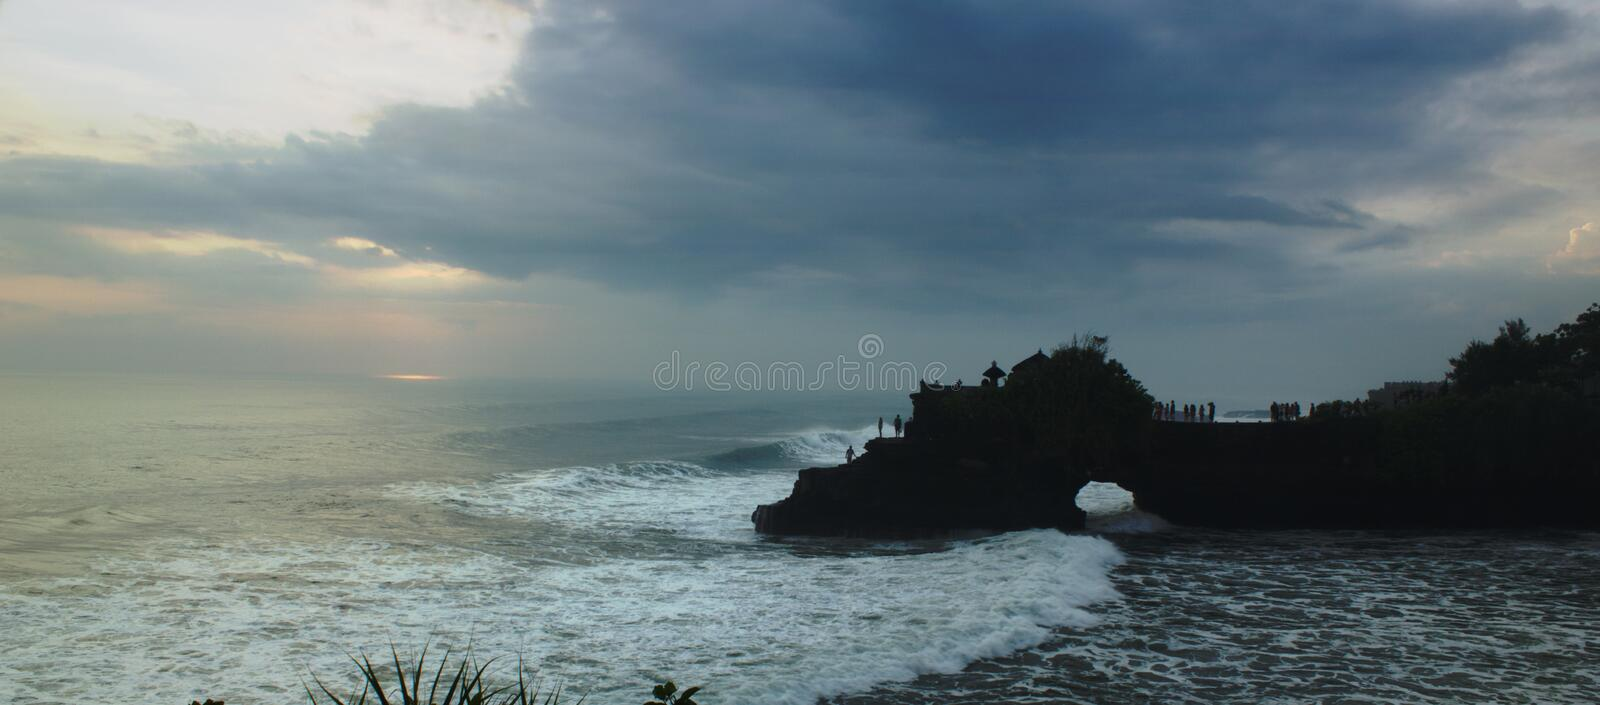 Shrine temple with clouds on beach in Bali, Indonesia royalty free stock photography